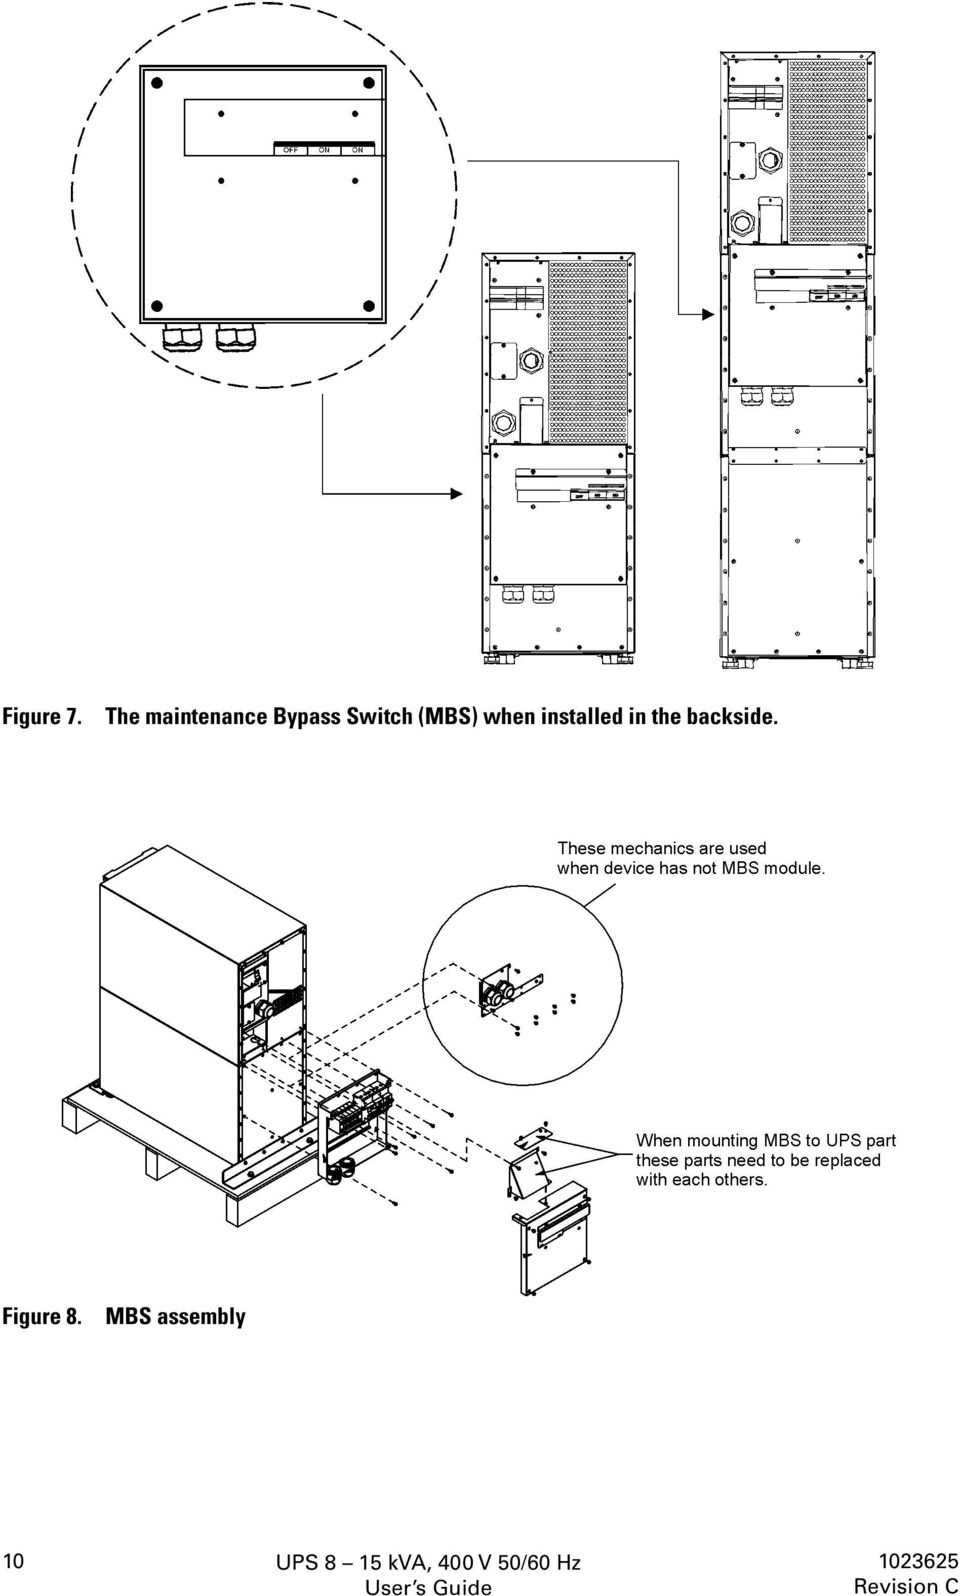 User S Guide Ups 8 15 Kva 400 V 50 60 Hz Output 3 Phase Input Bypass Switch Wiring Diagram Mbs When